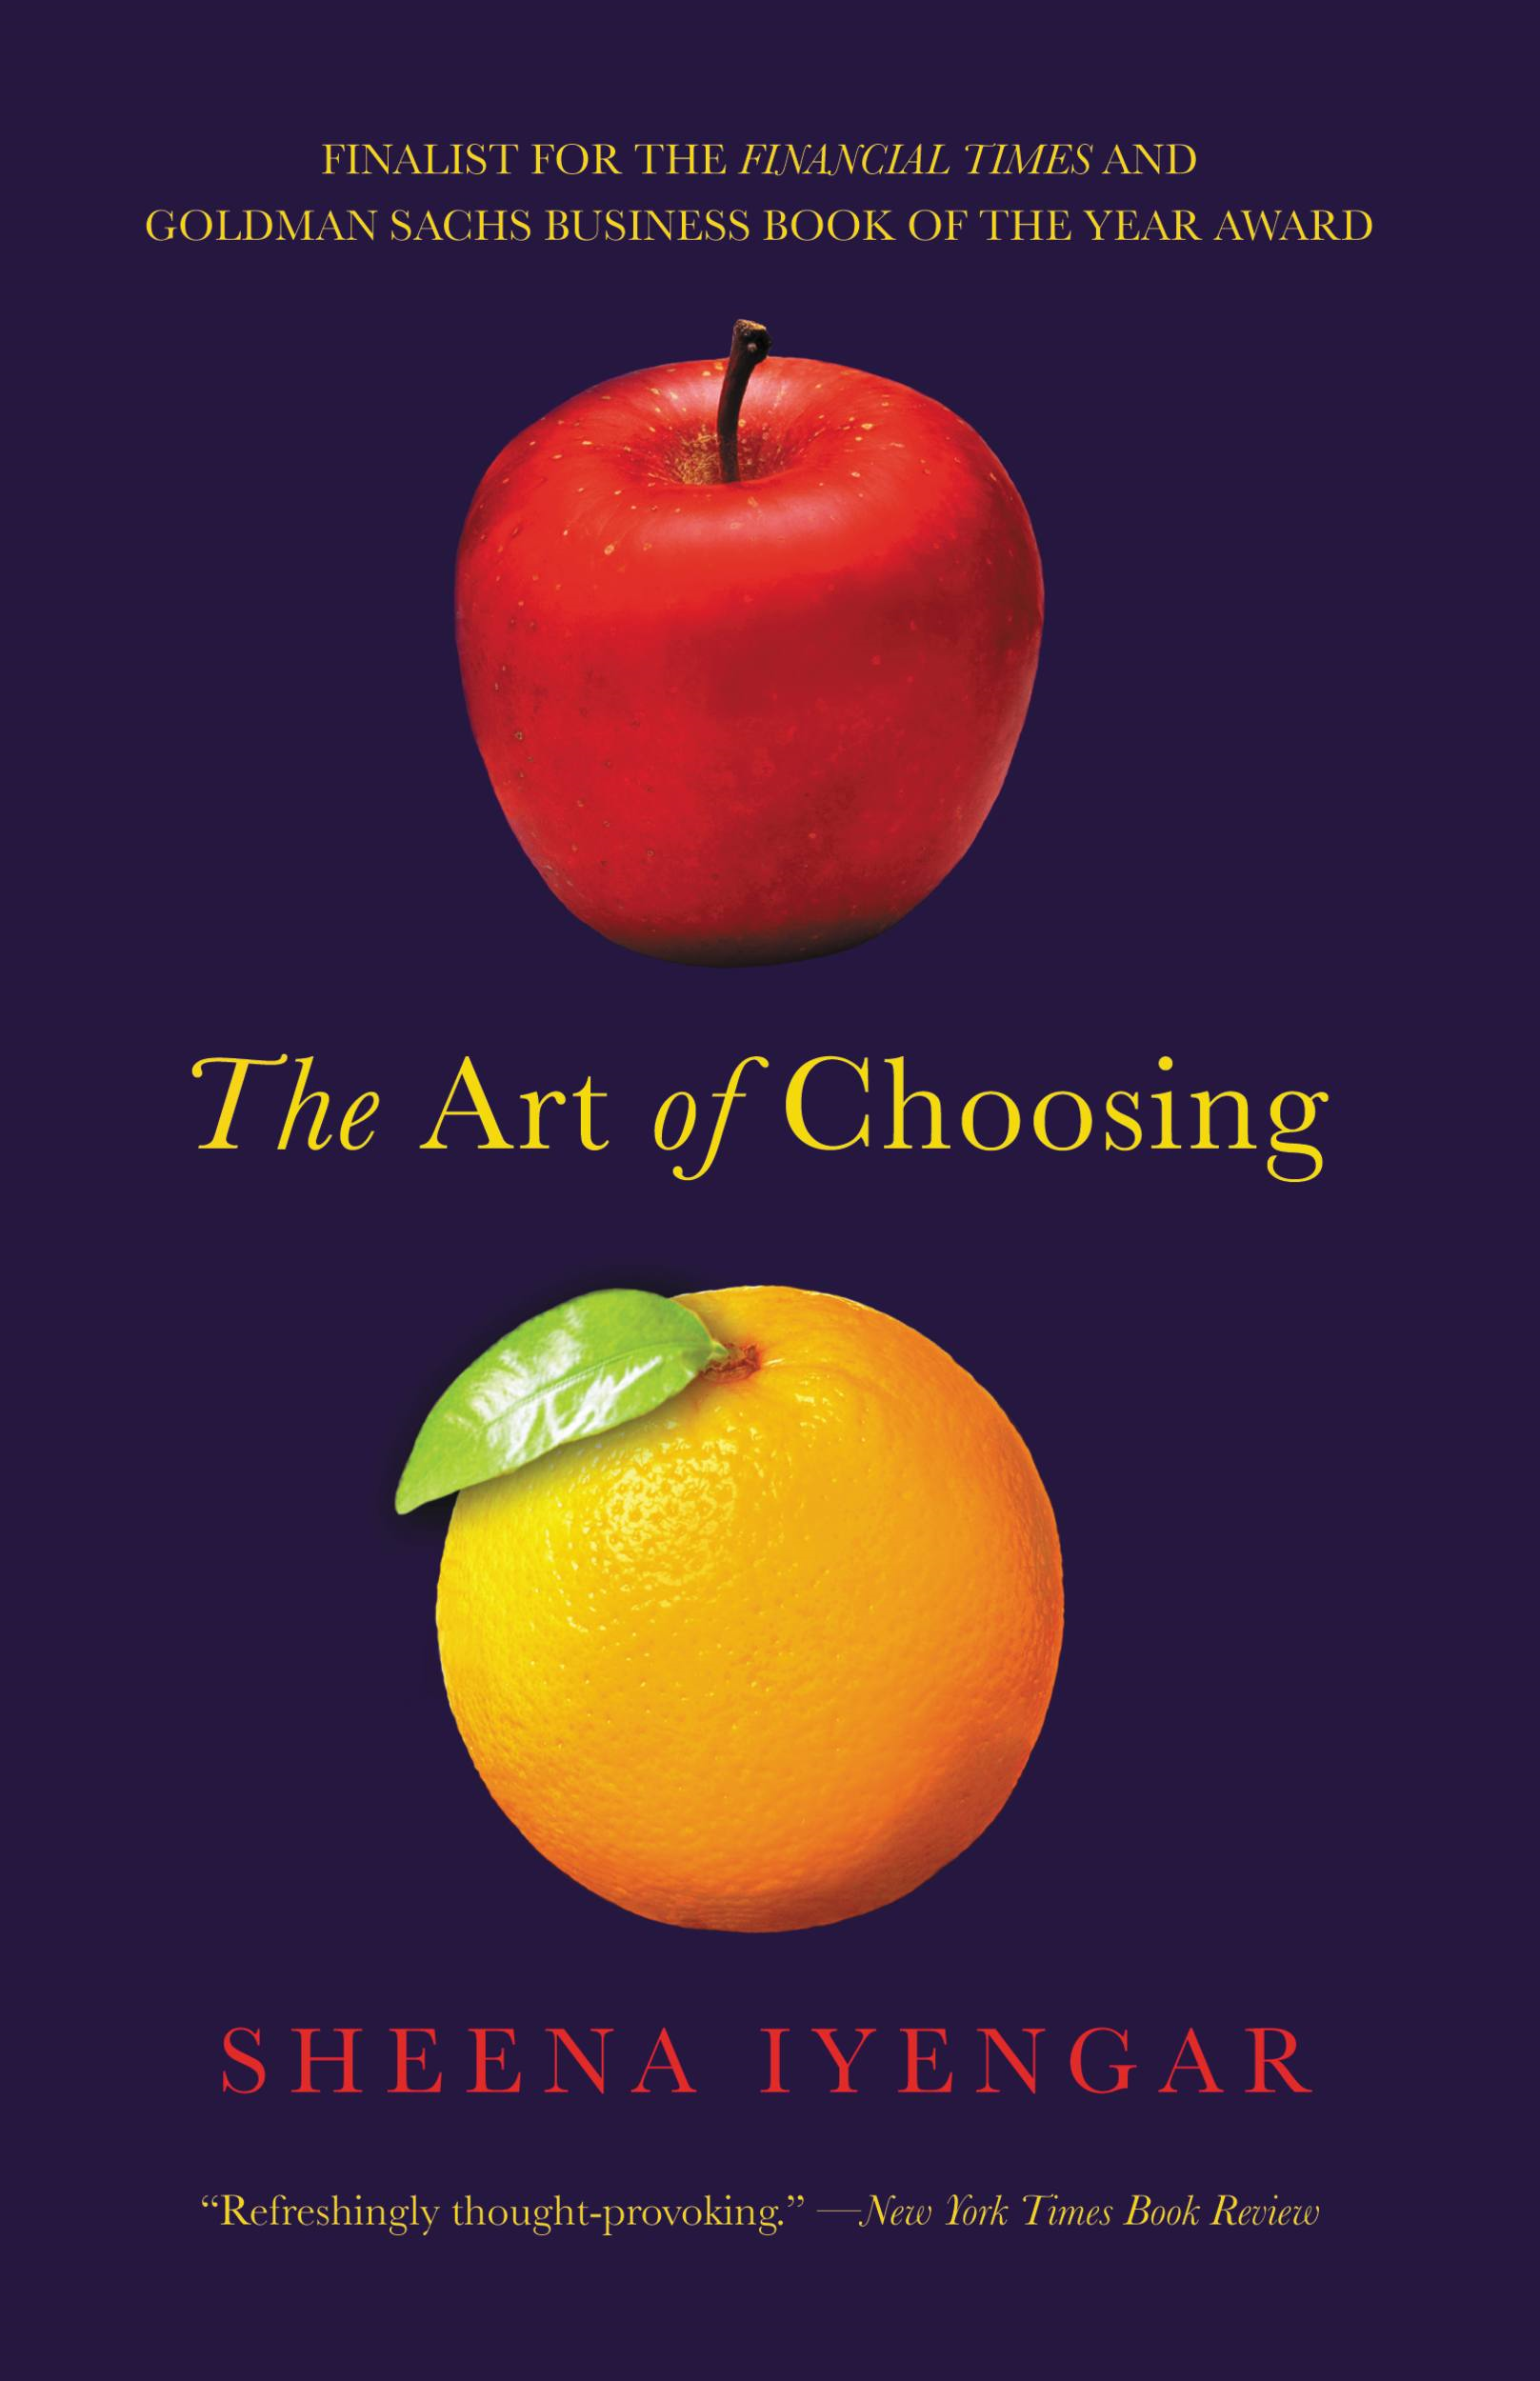 The Art of Choosing By: Sheena Iyengar